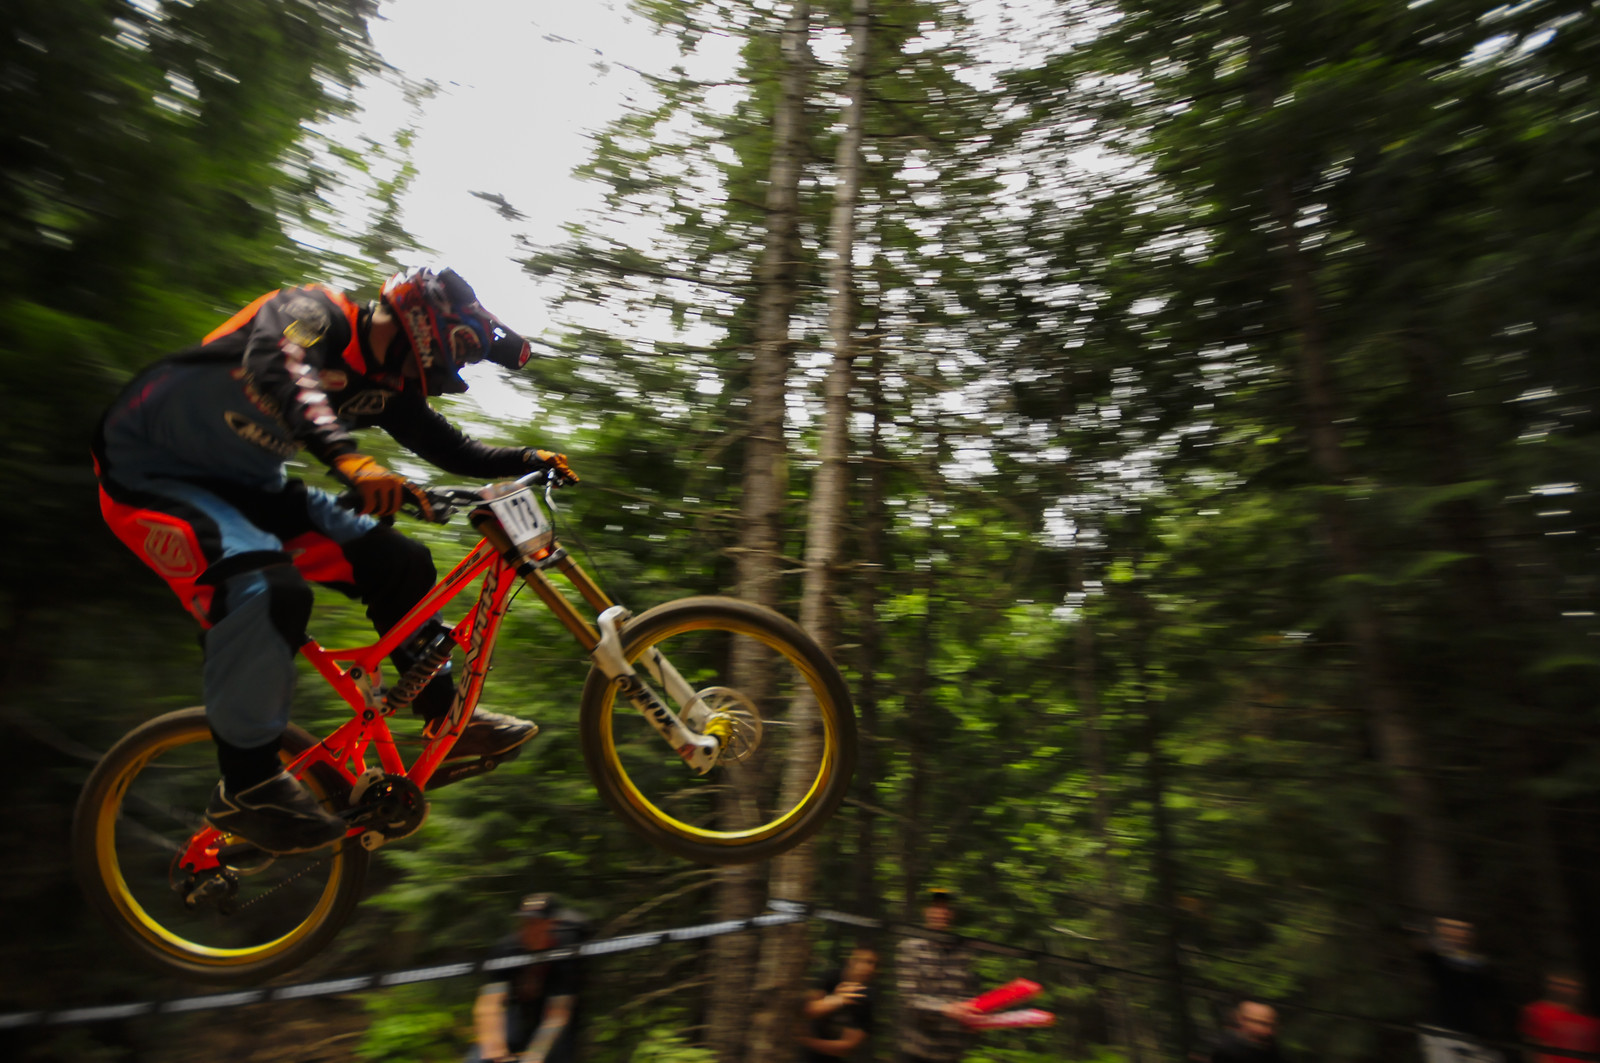 fox air dh - ezefaccio - Mountain Biking Pictures - Vital MTB